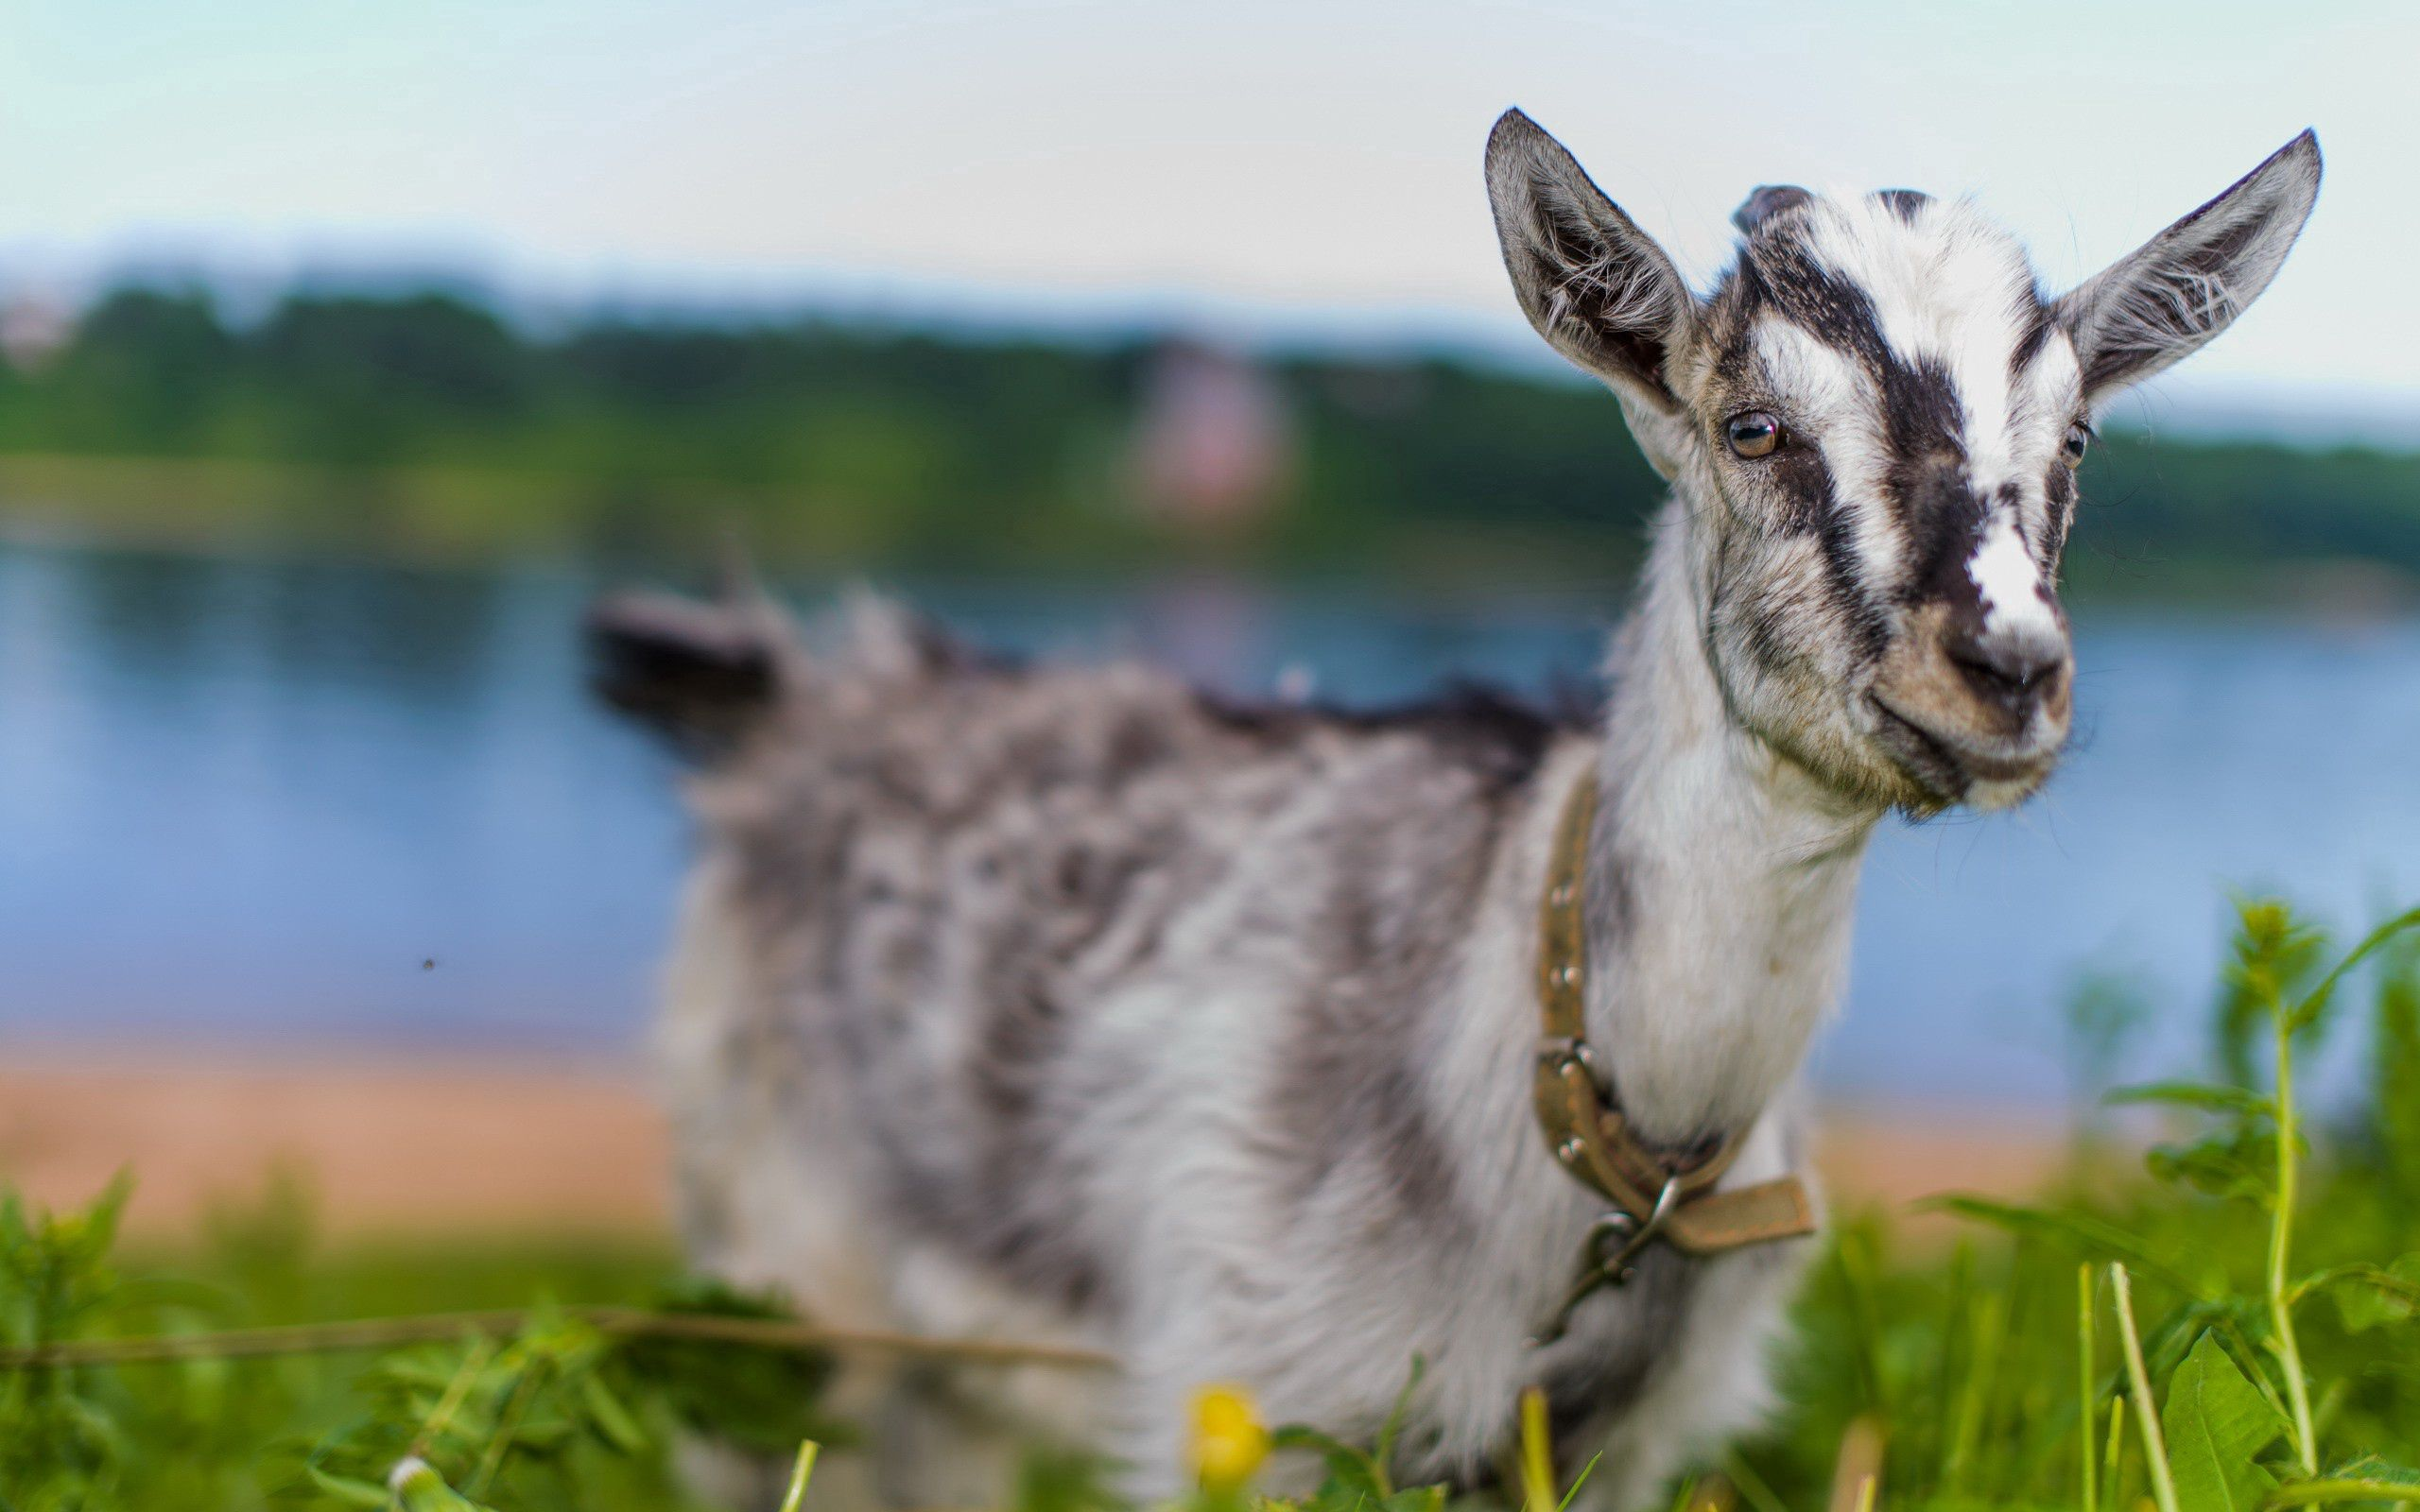 153180 Screensavers and Wallpapers Animal for phone. Download Animals, Goat, Animal, Cute, Nice, Sight, Opinion, Grass pictures for free